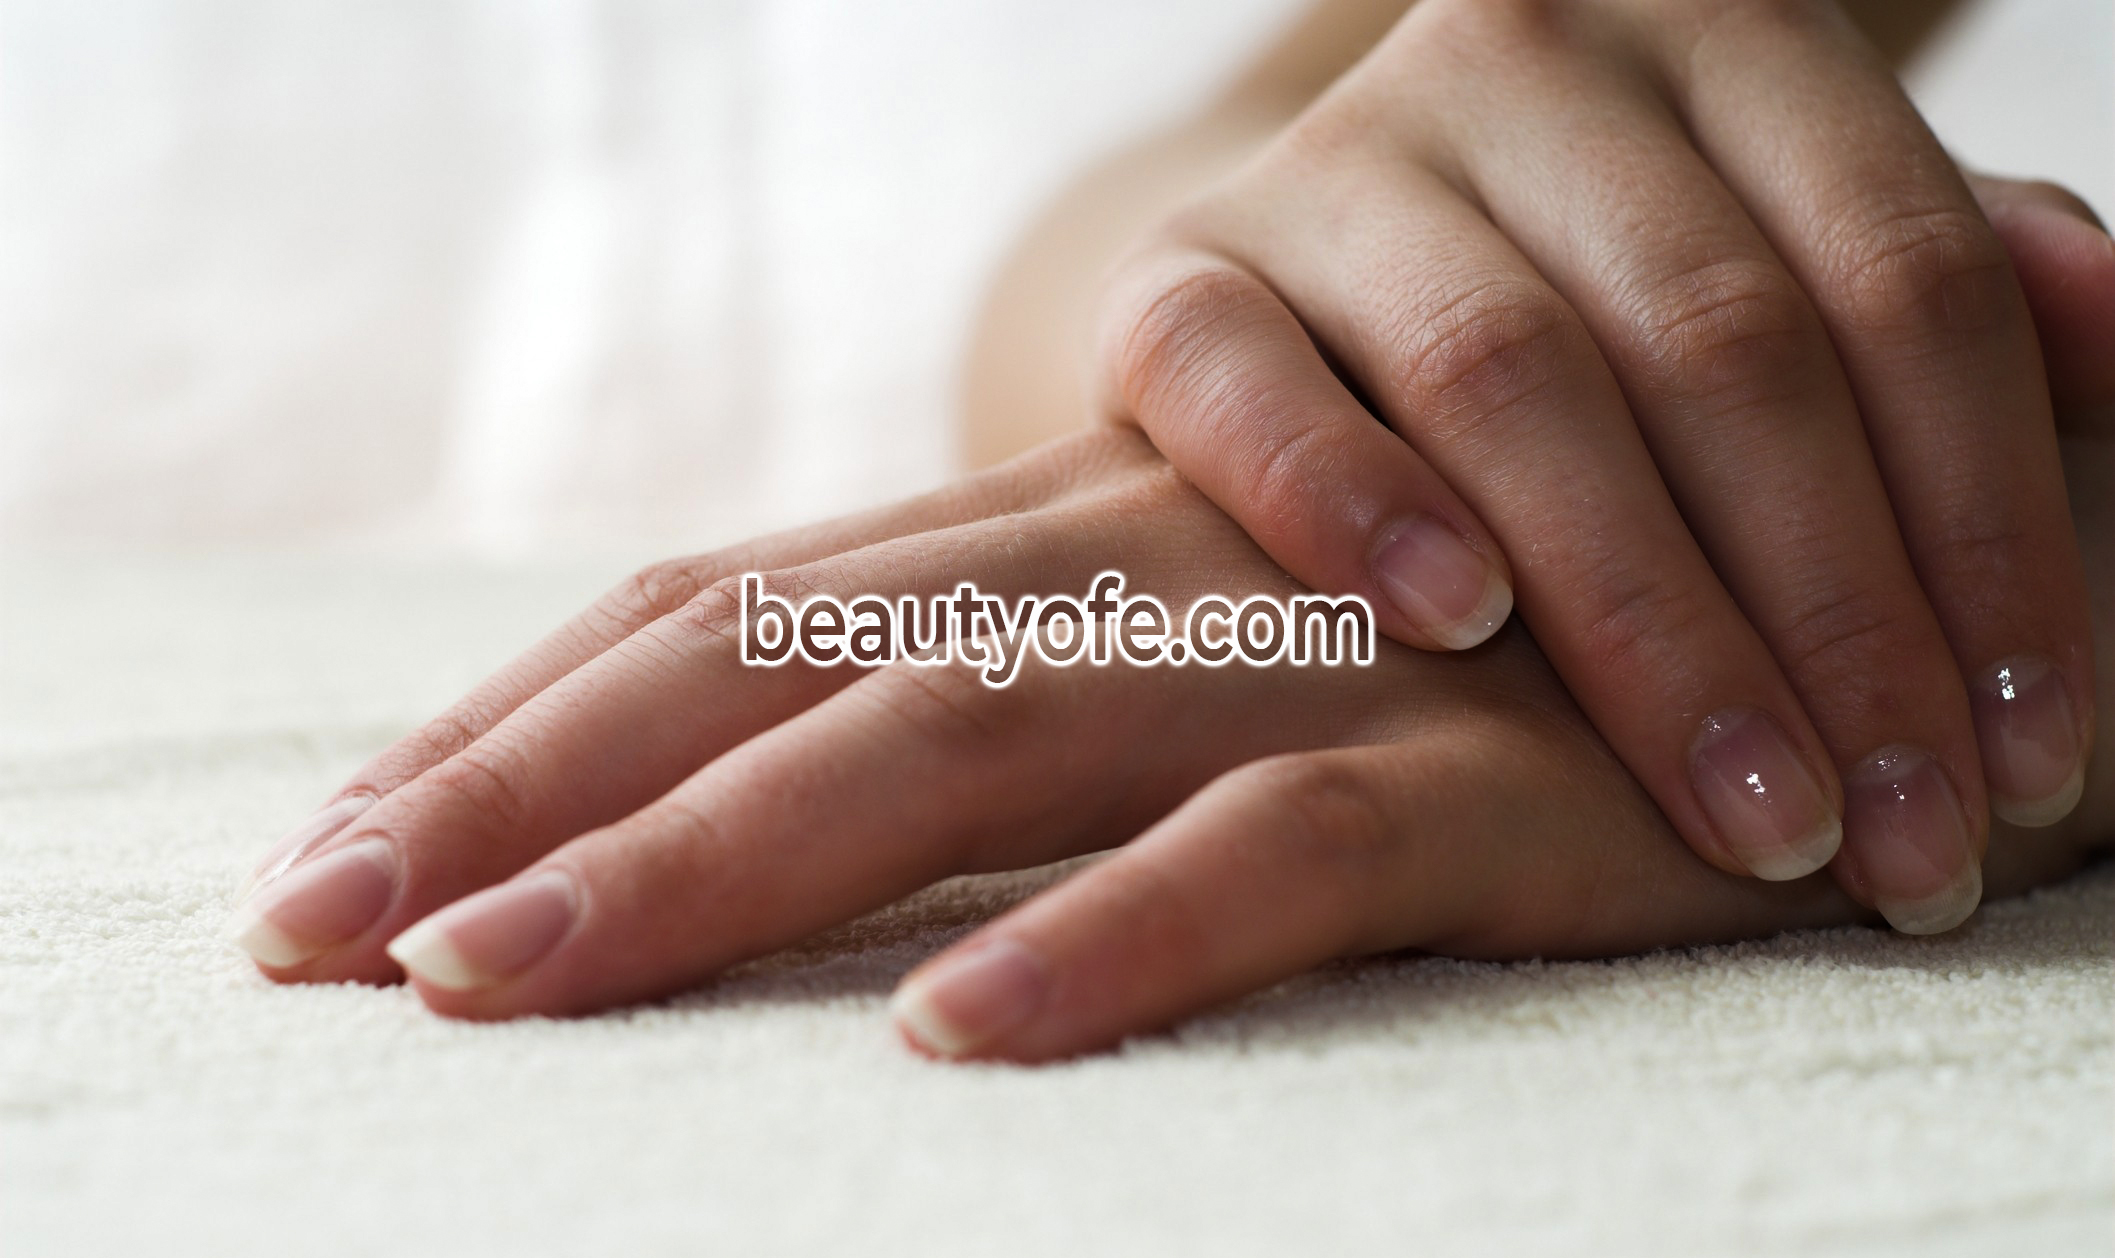 vitamin e oil uses and benefits for nails